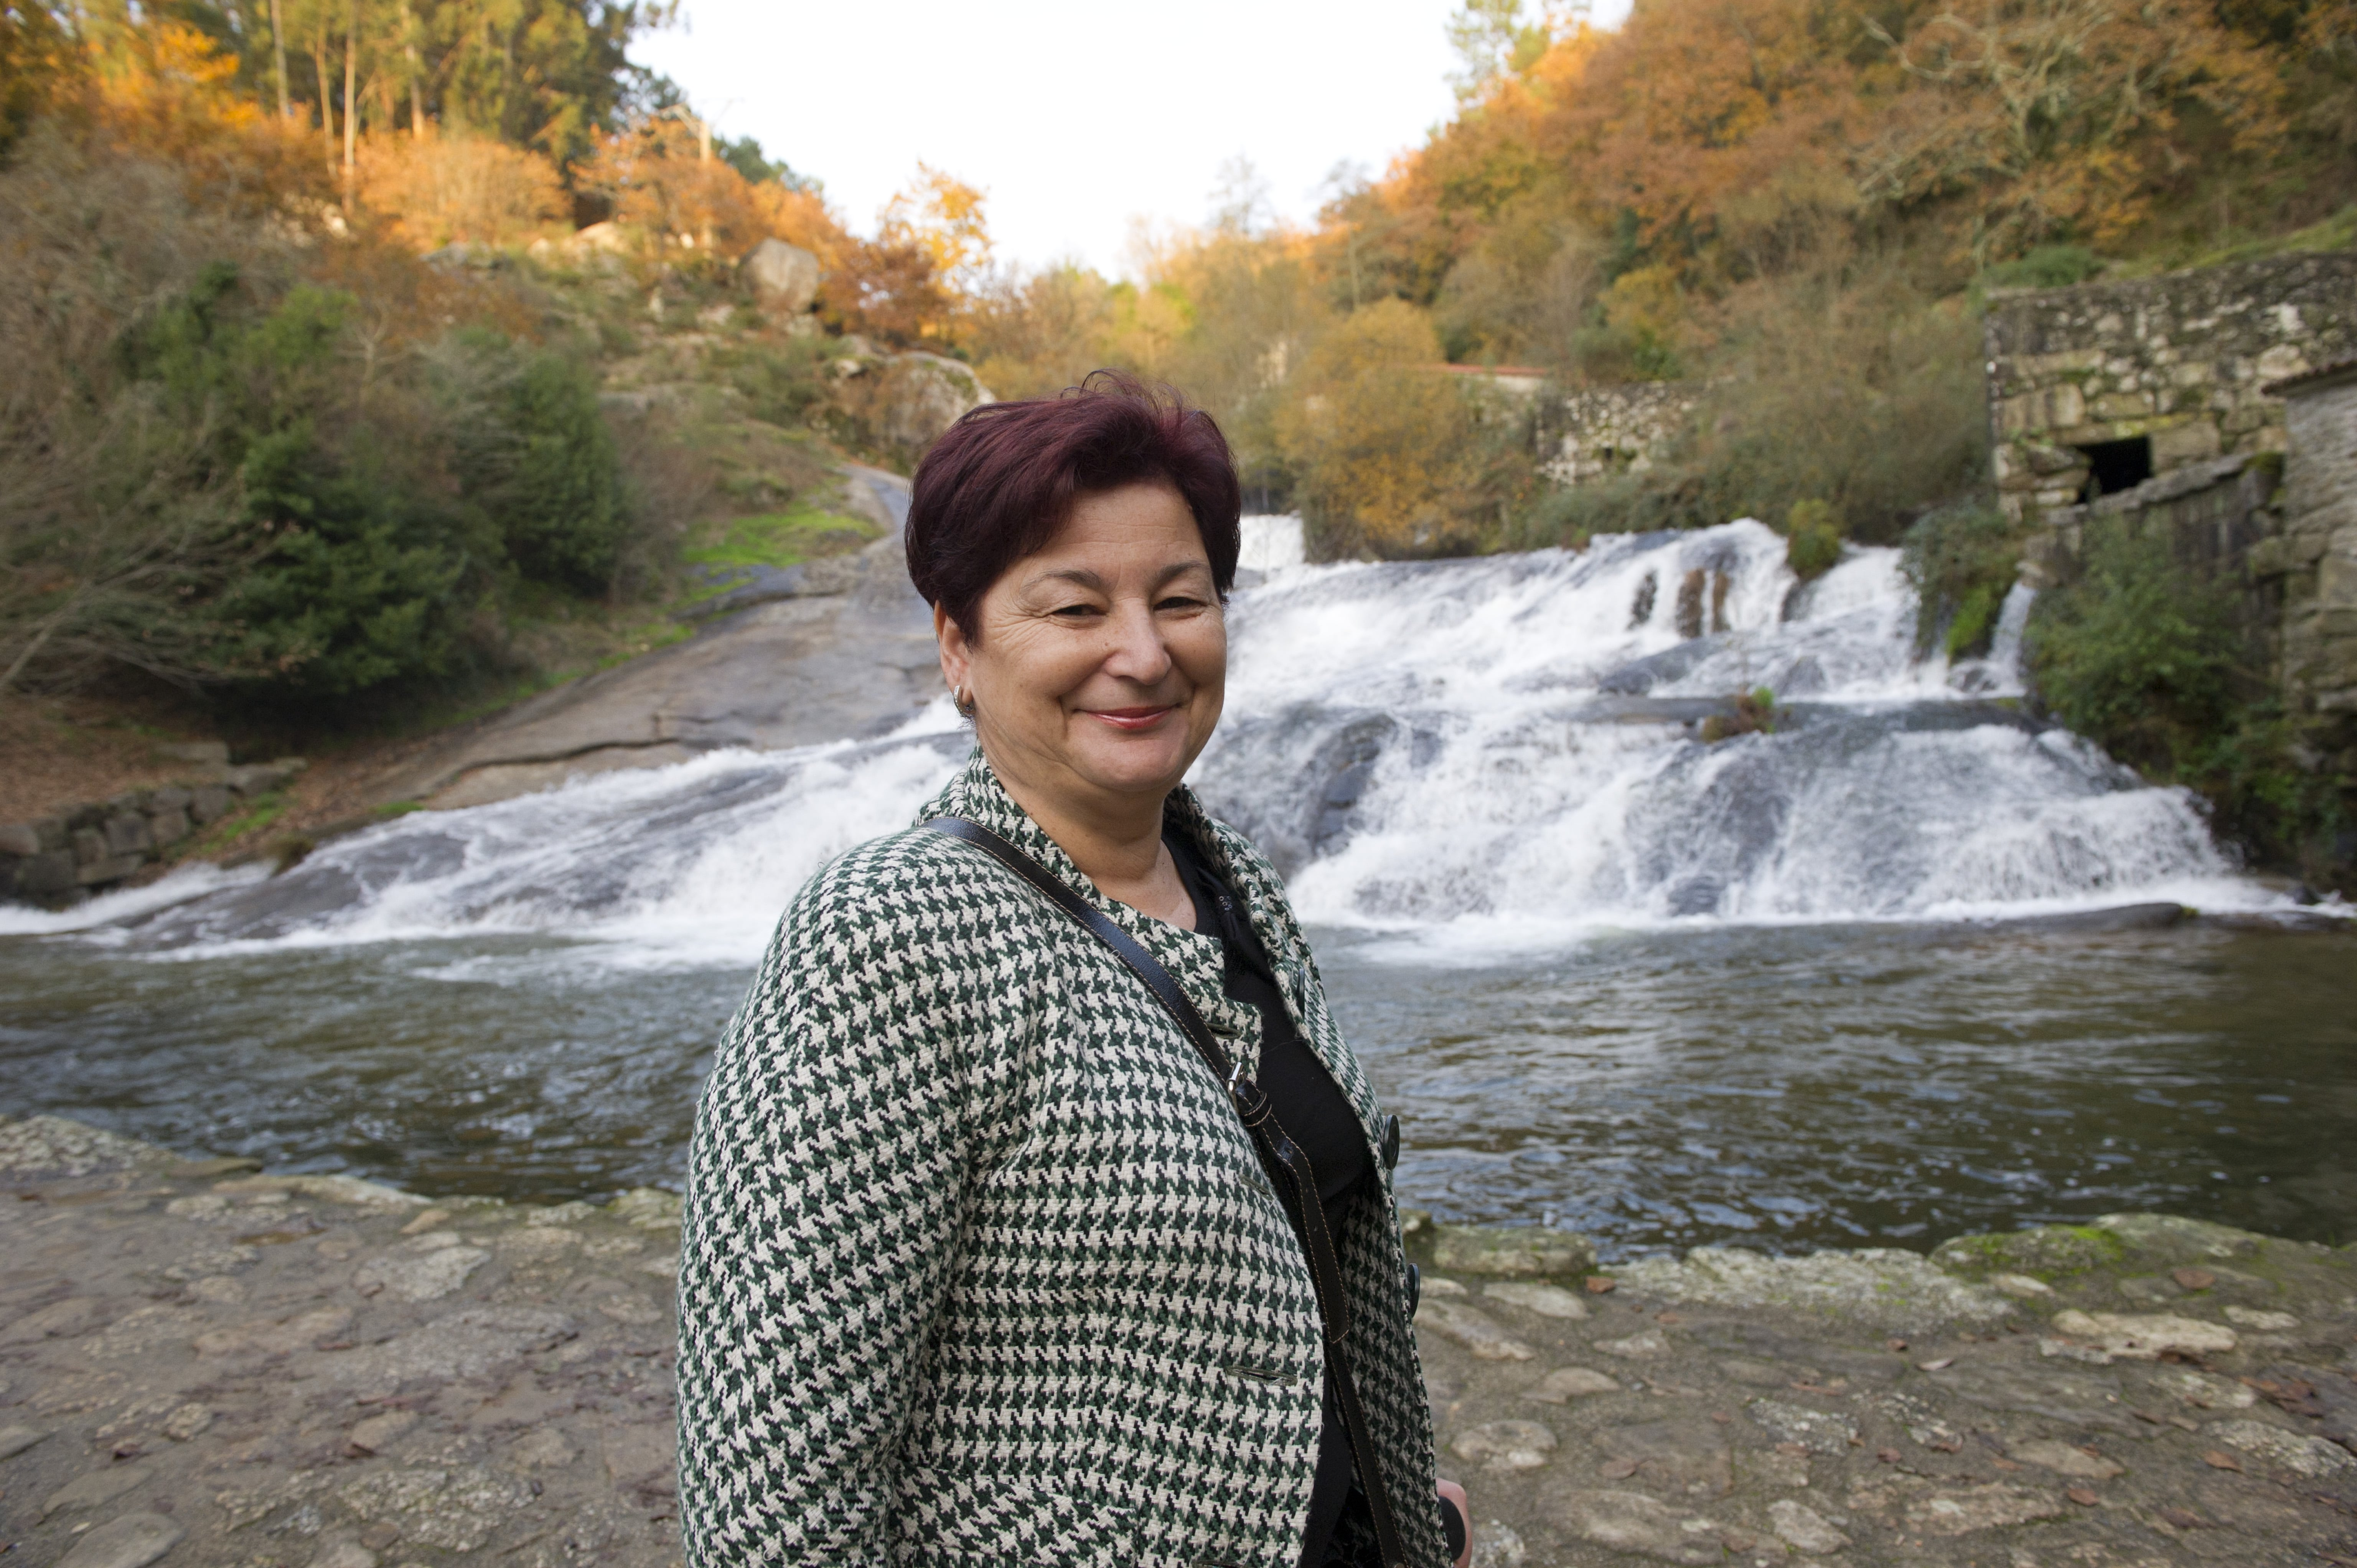 A smiling woman standing in front of a waterfall.